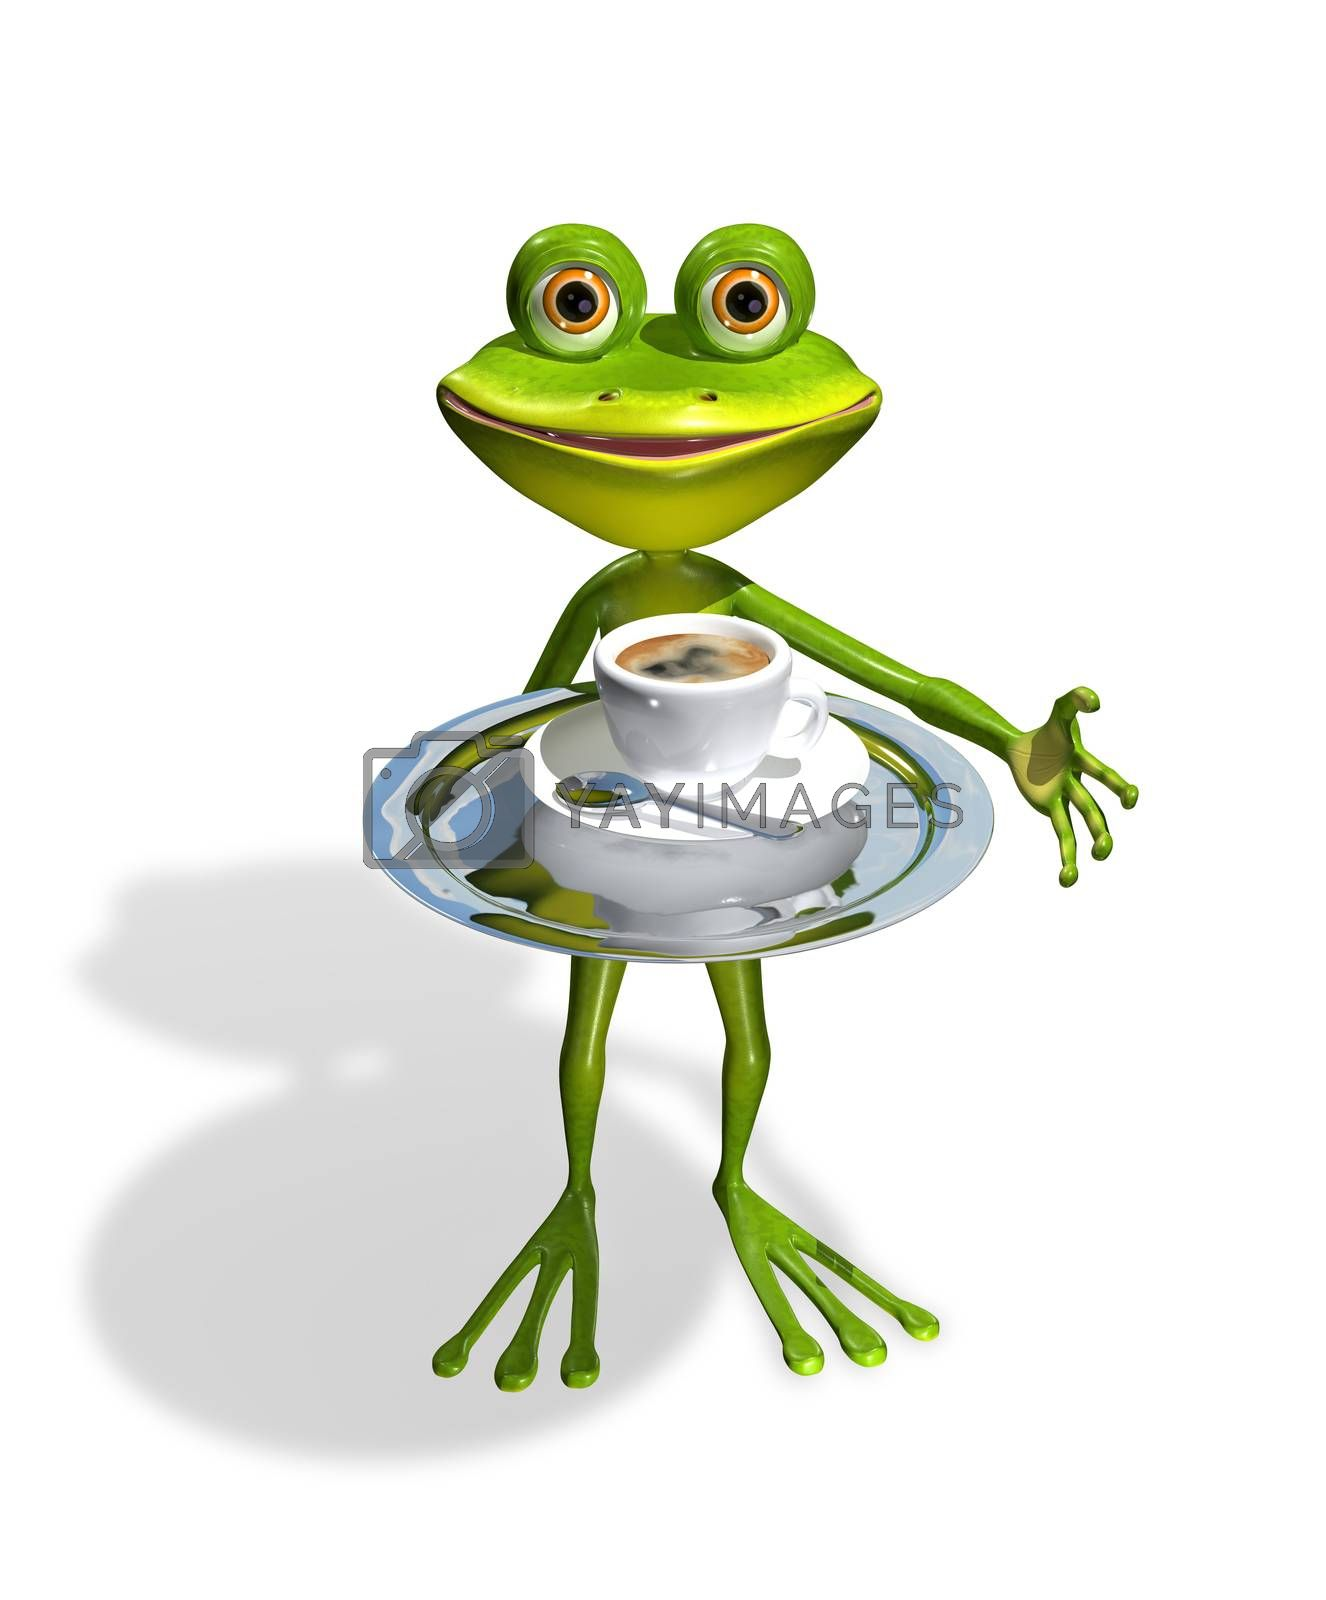 abstract illustration frog with a cup of coffee